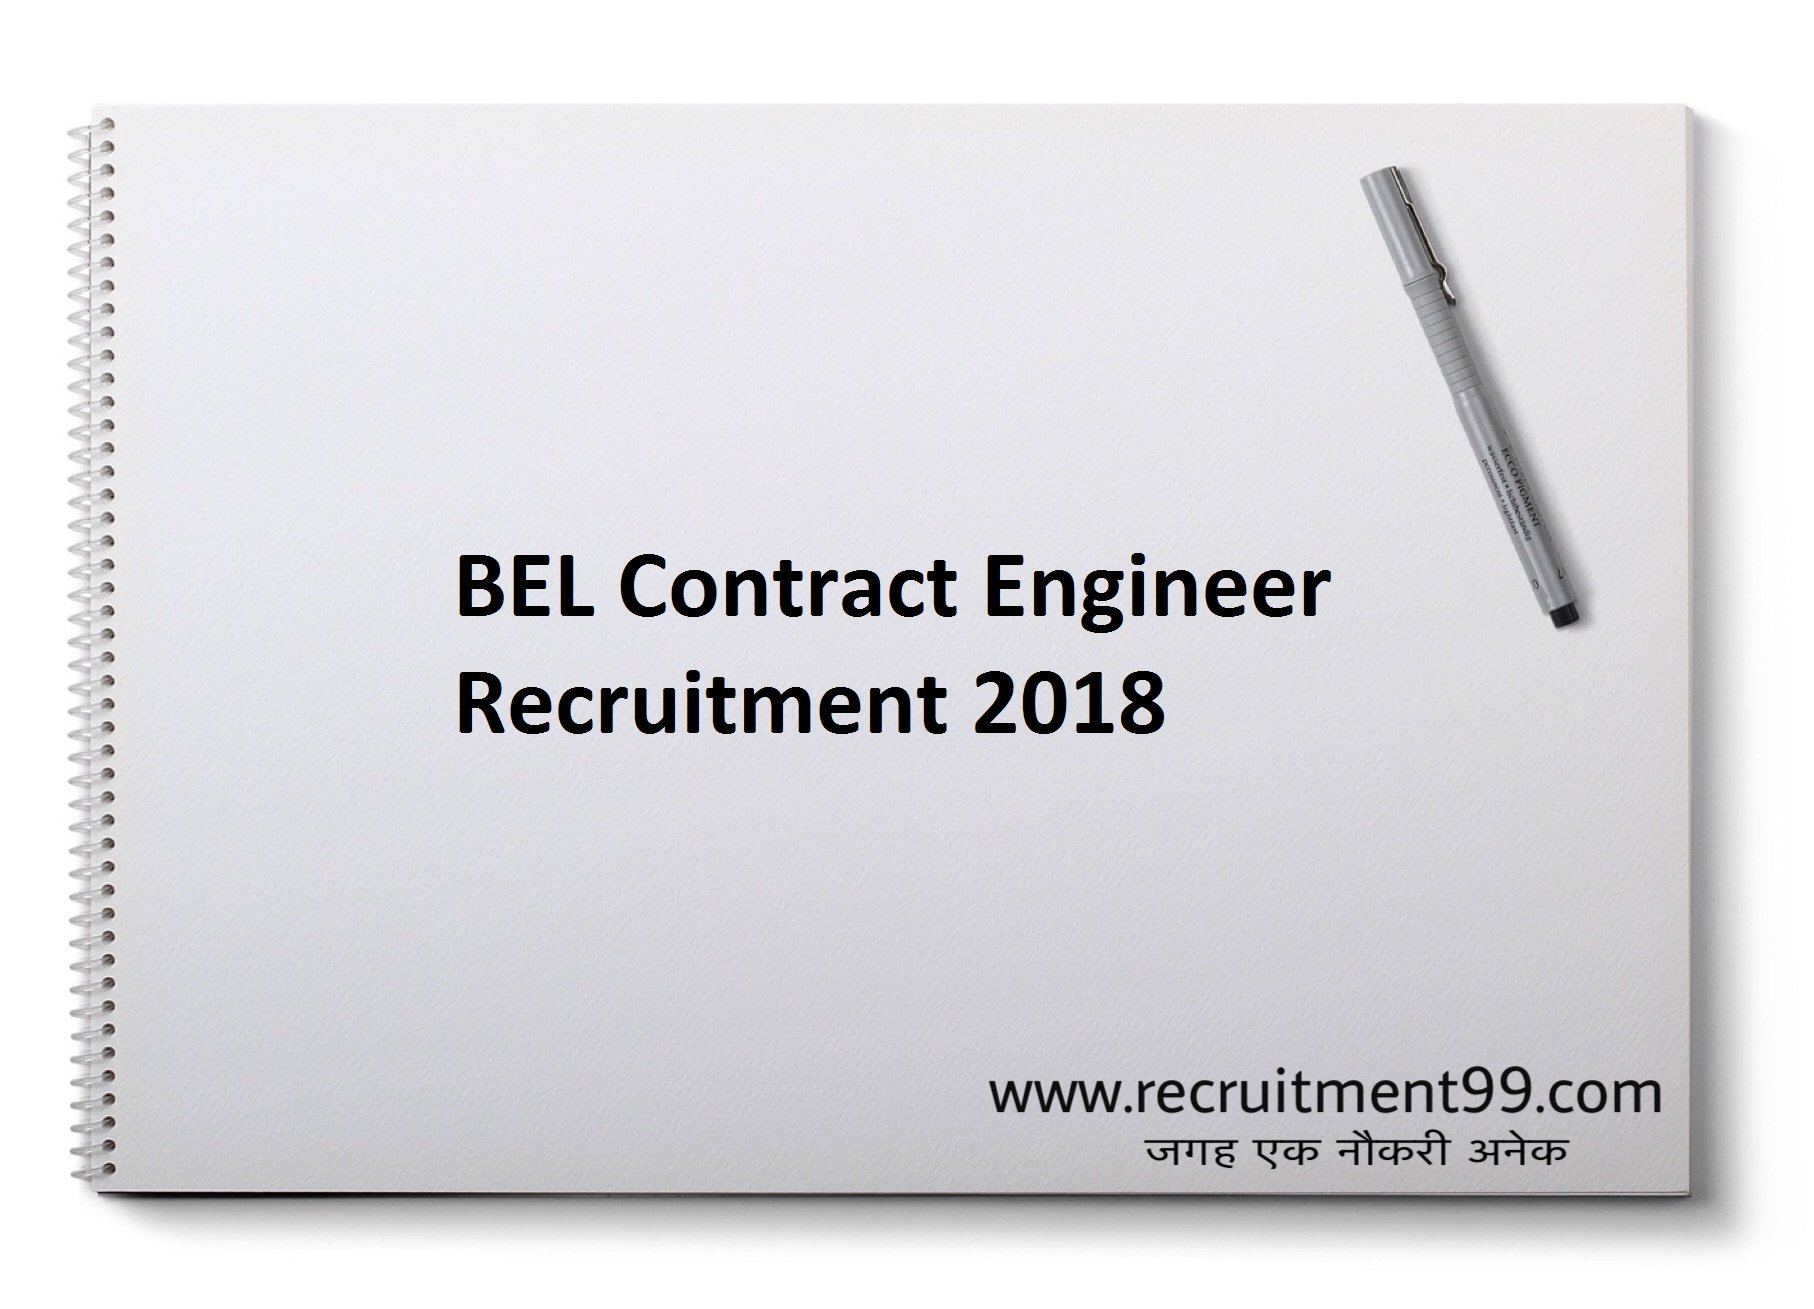 BEL Contract Engineer Recruitment Admit Card Result 2018